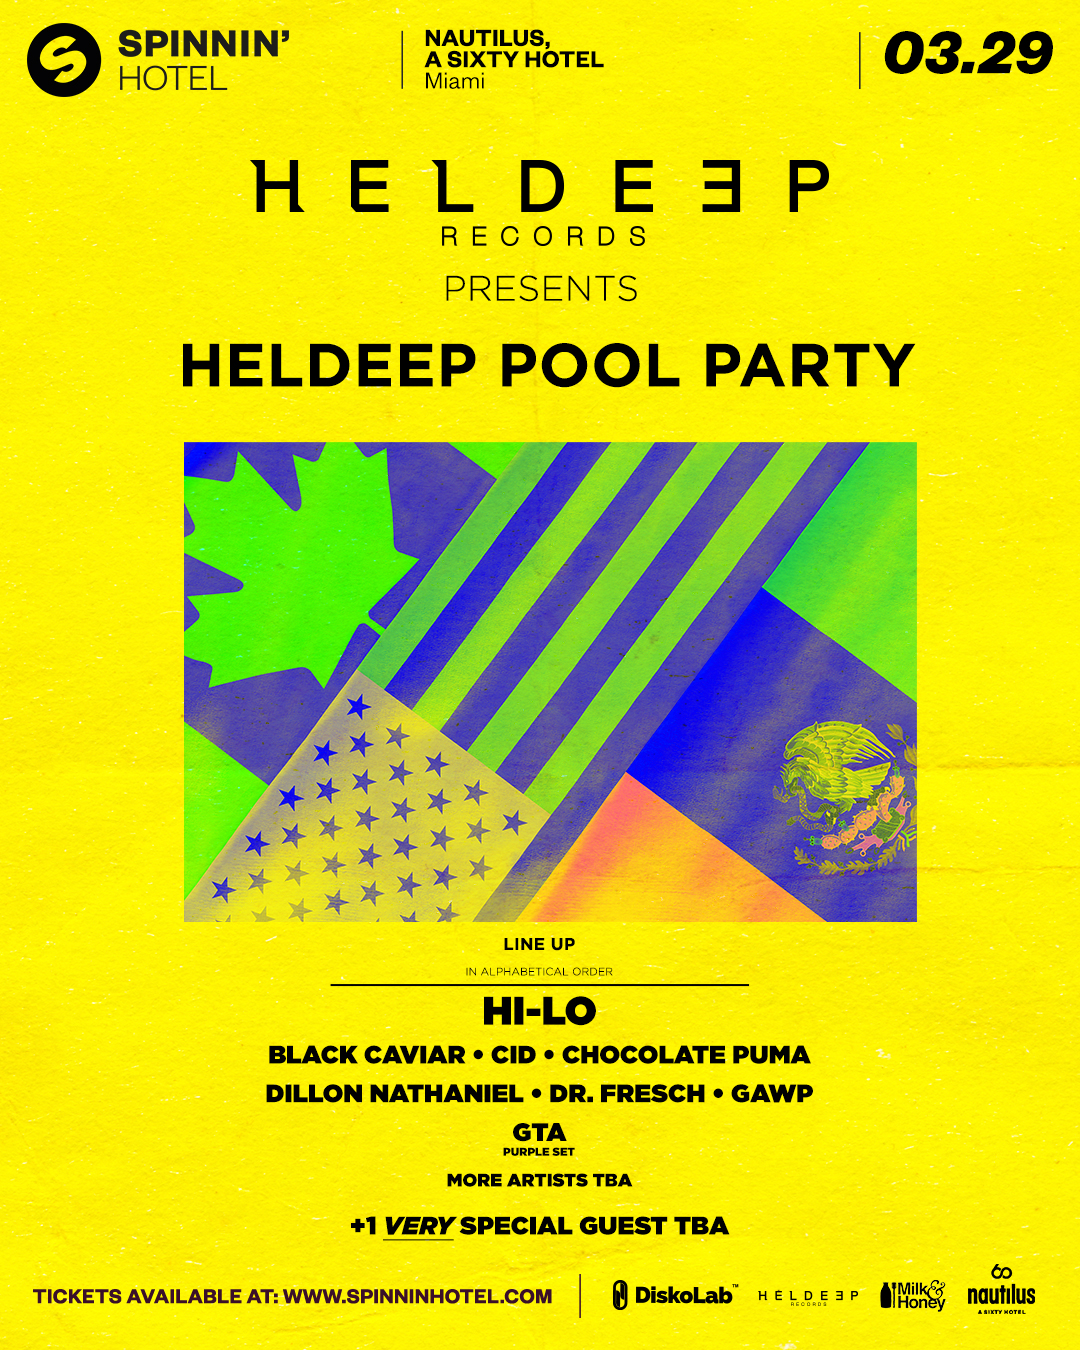 Heldeep Pool Party at Spinnin' Hotel Image